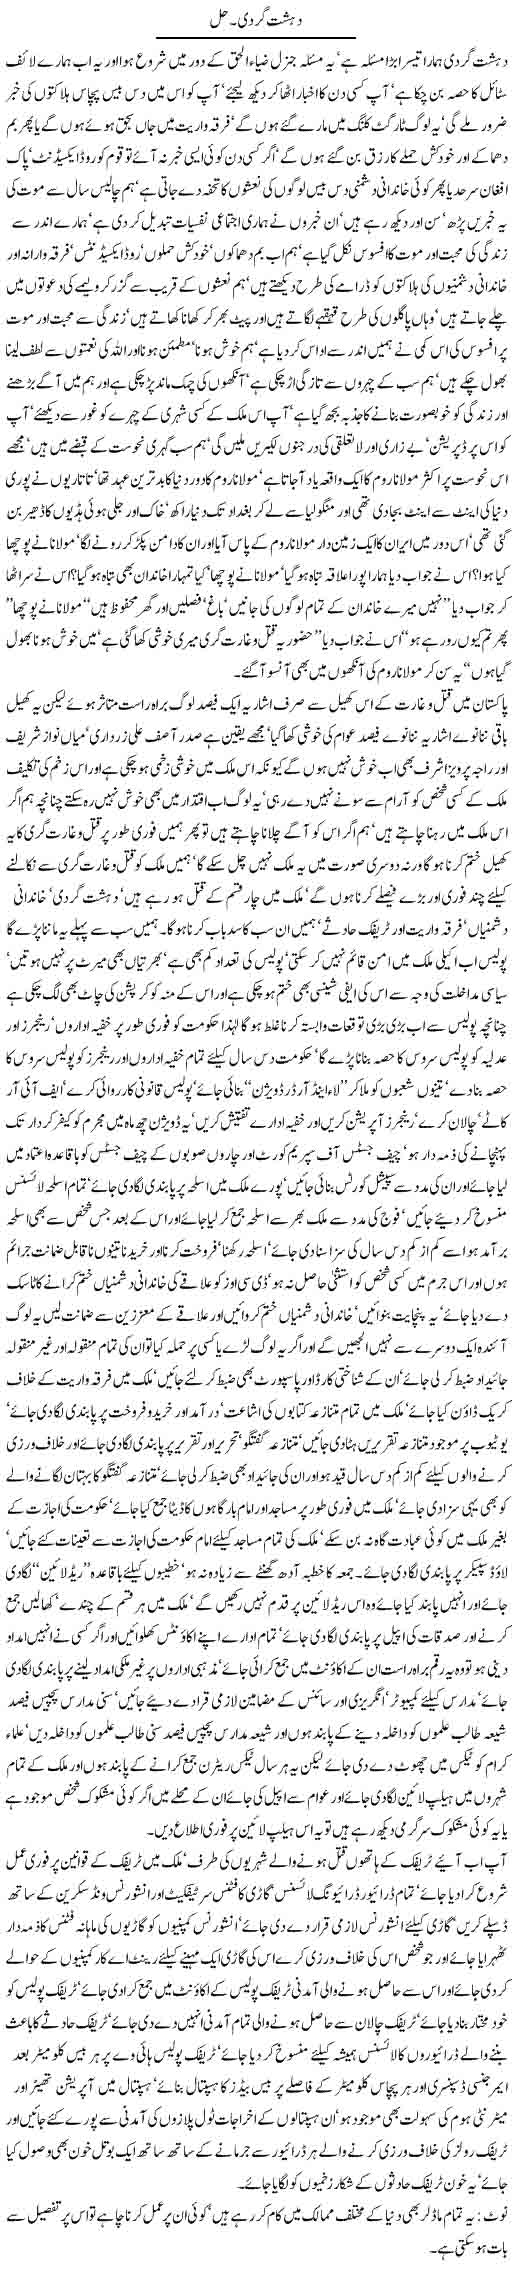 essay on city life in pakistan Village life essayculturally, pakistan's rural folk enjoy a seemingly happy and contented life not that they tend to be passive and lack initiative on the other hand our rural folk are more energetic and struggle minded than their city dwelling counterparts a way of lifebut more natural by hira n.